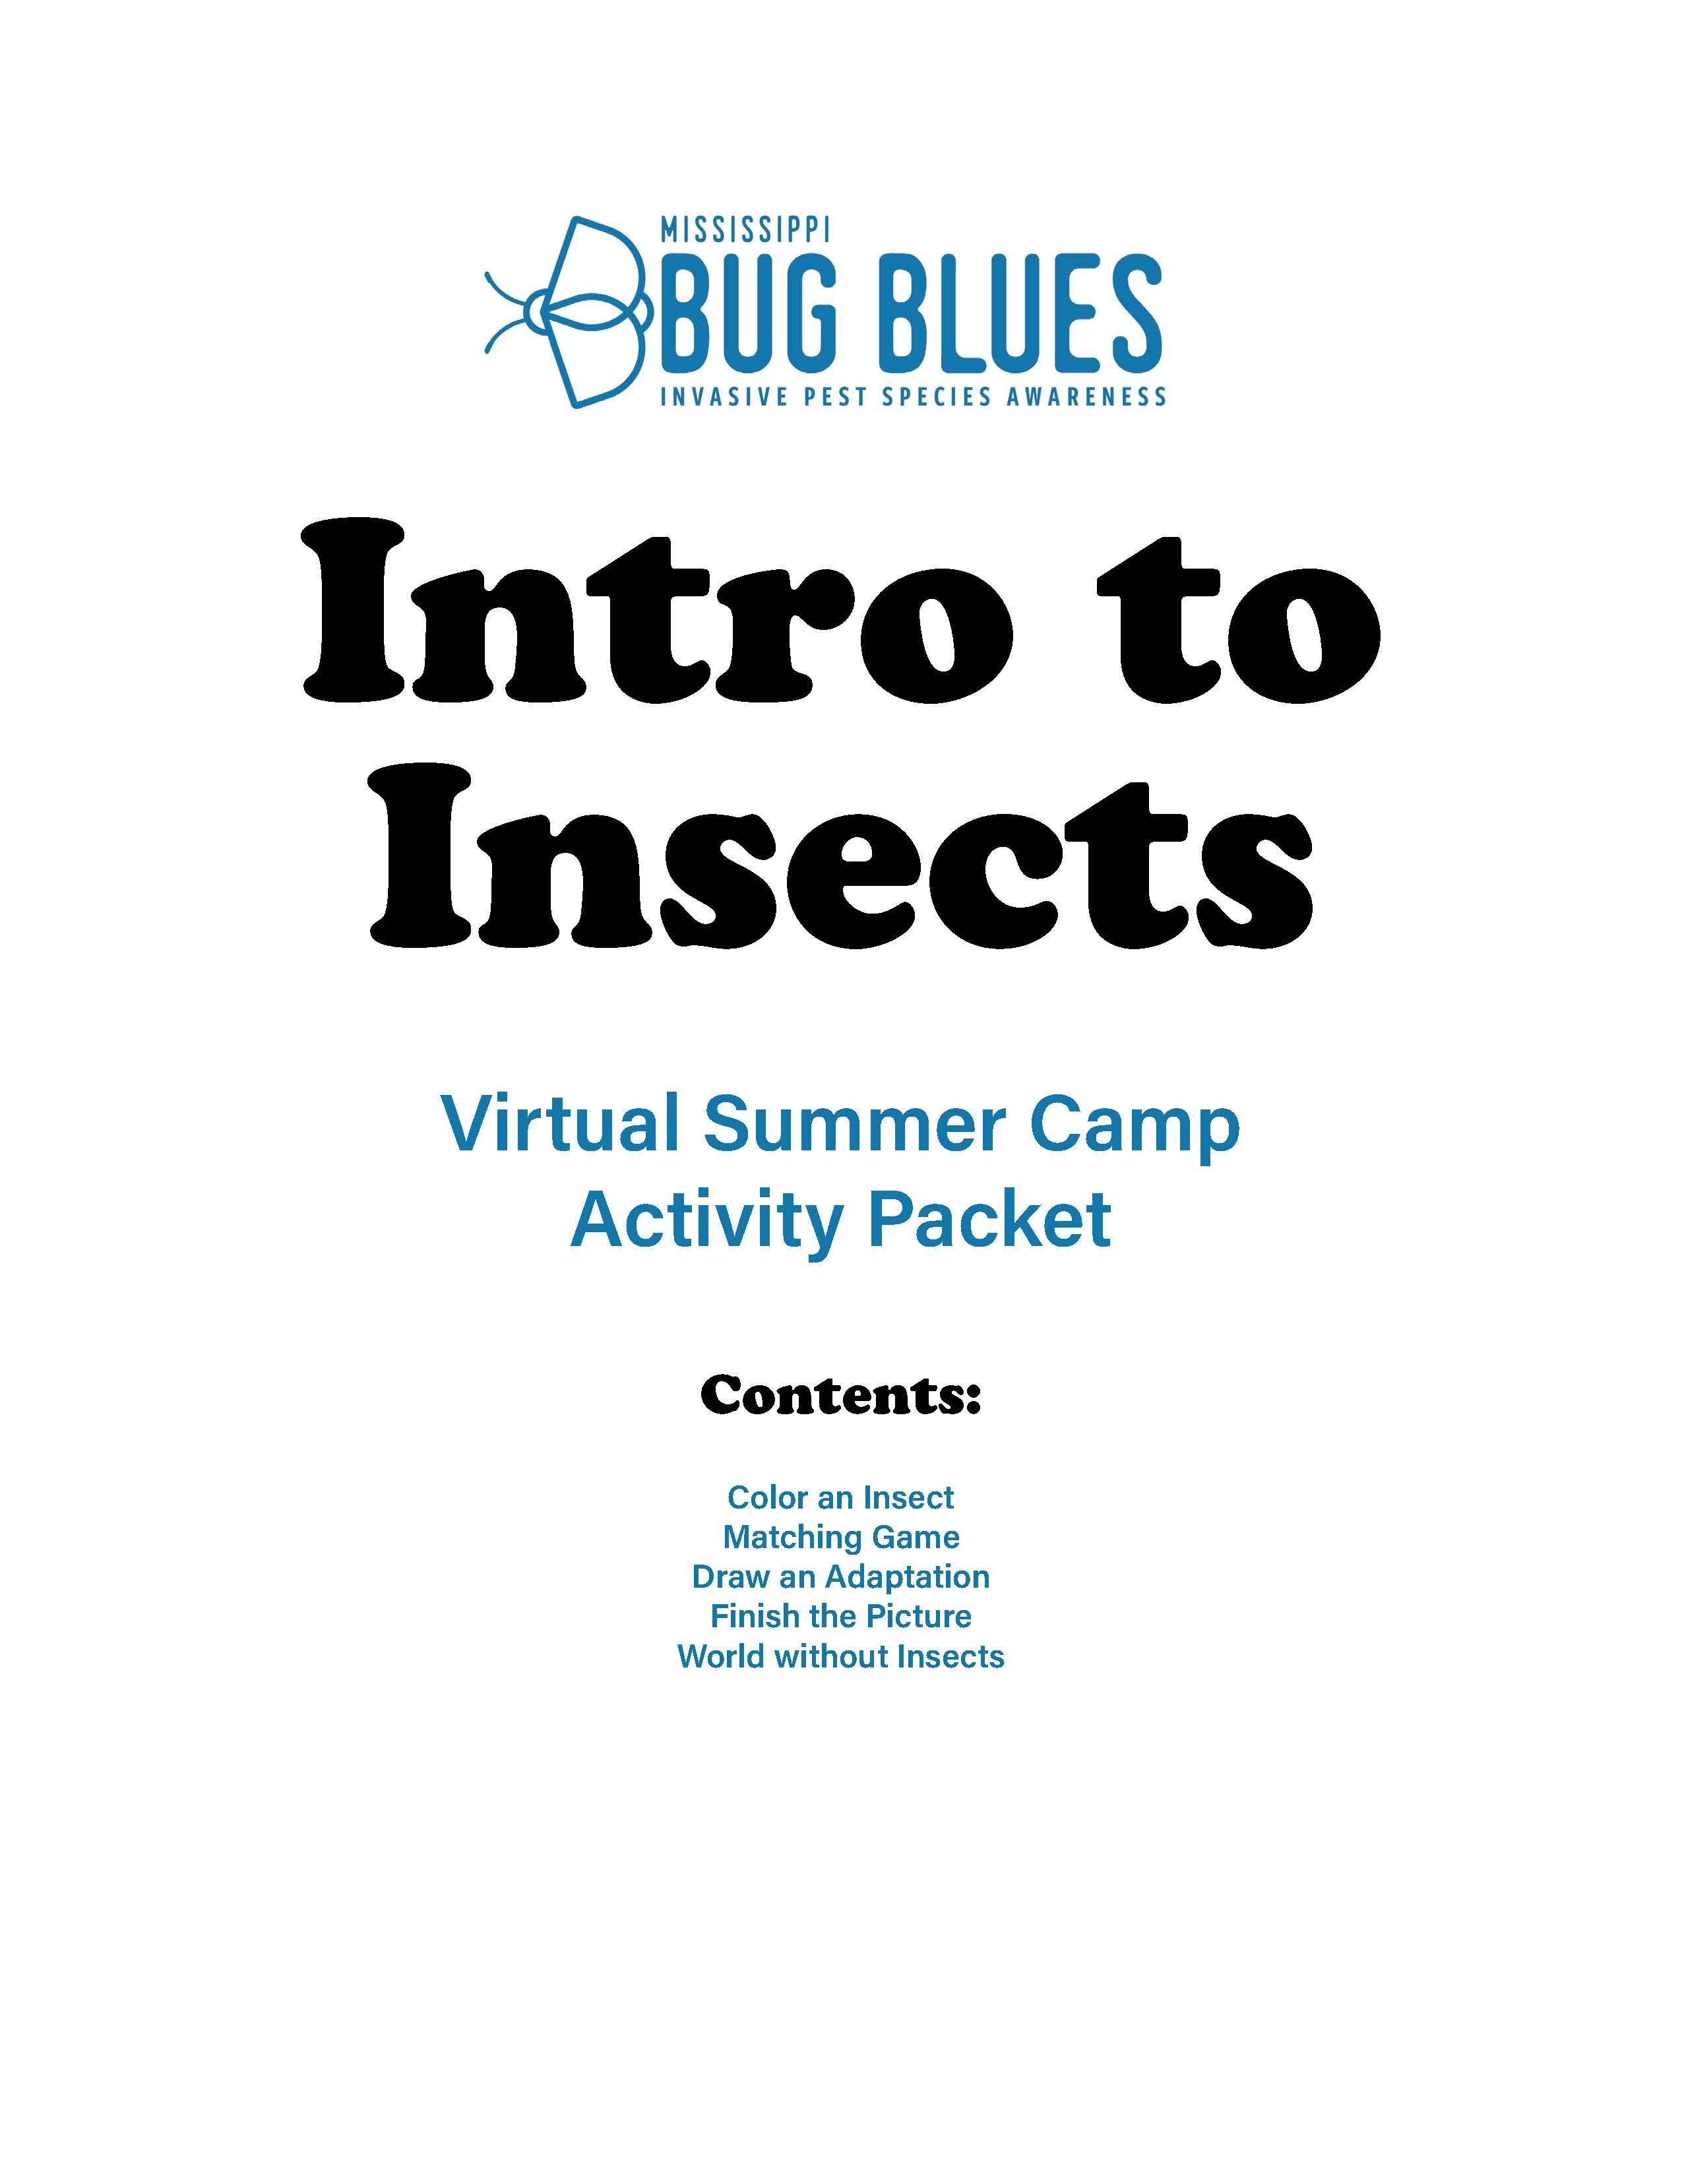 Intro to Insects Virtual Online Summer Camp Activity Packet Workbook